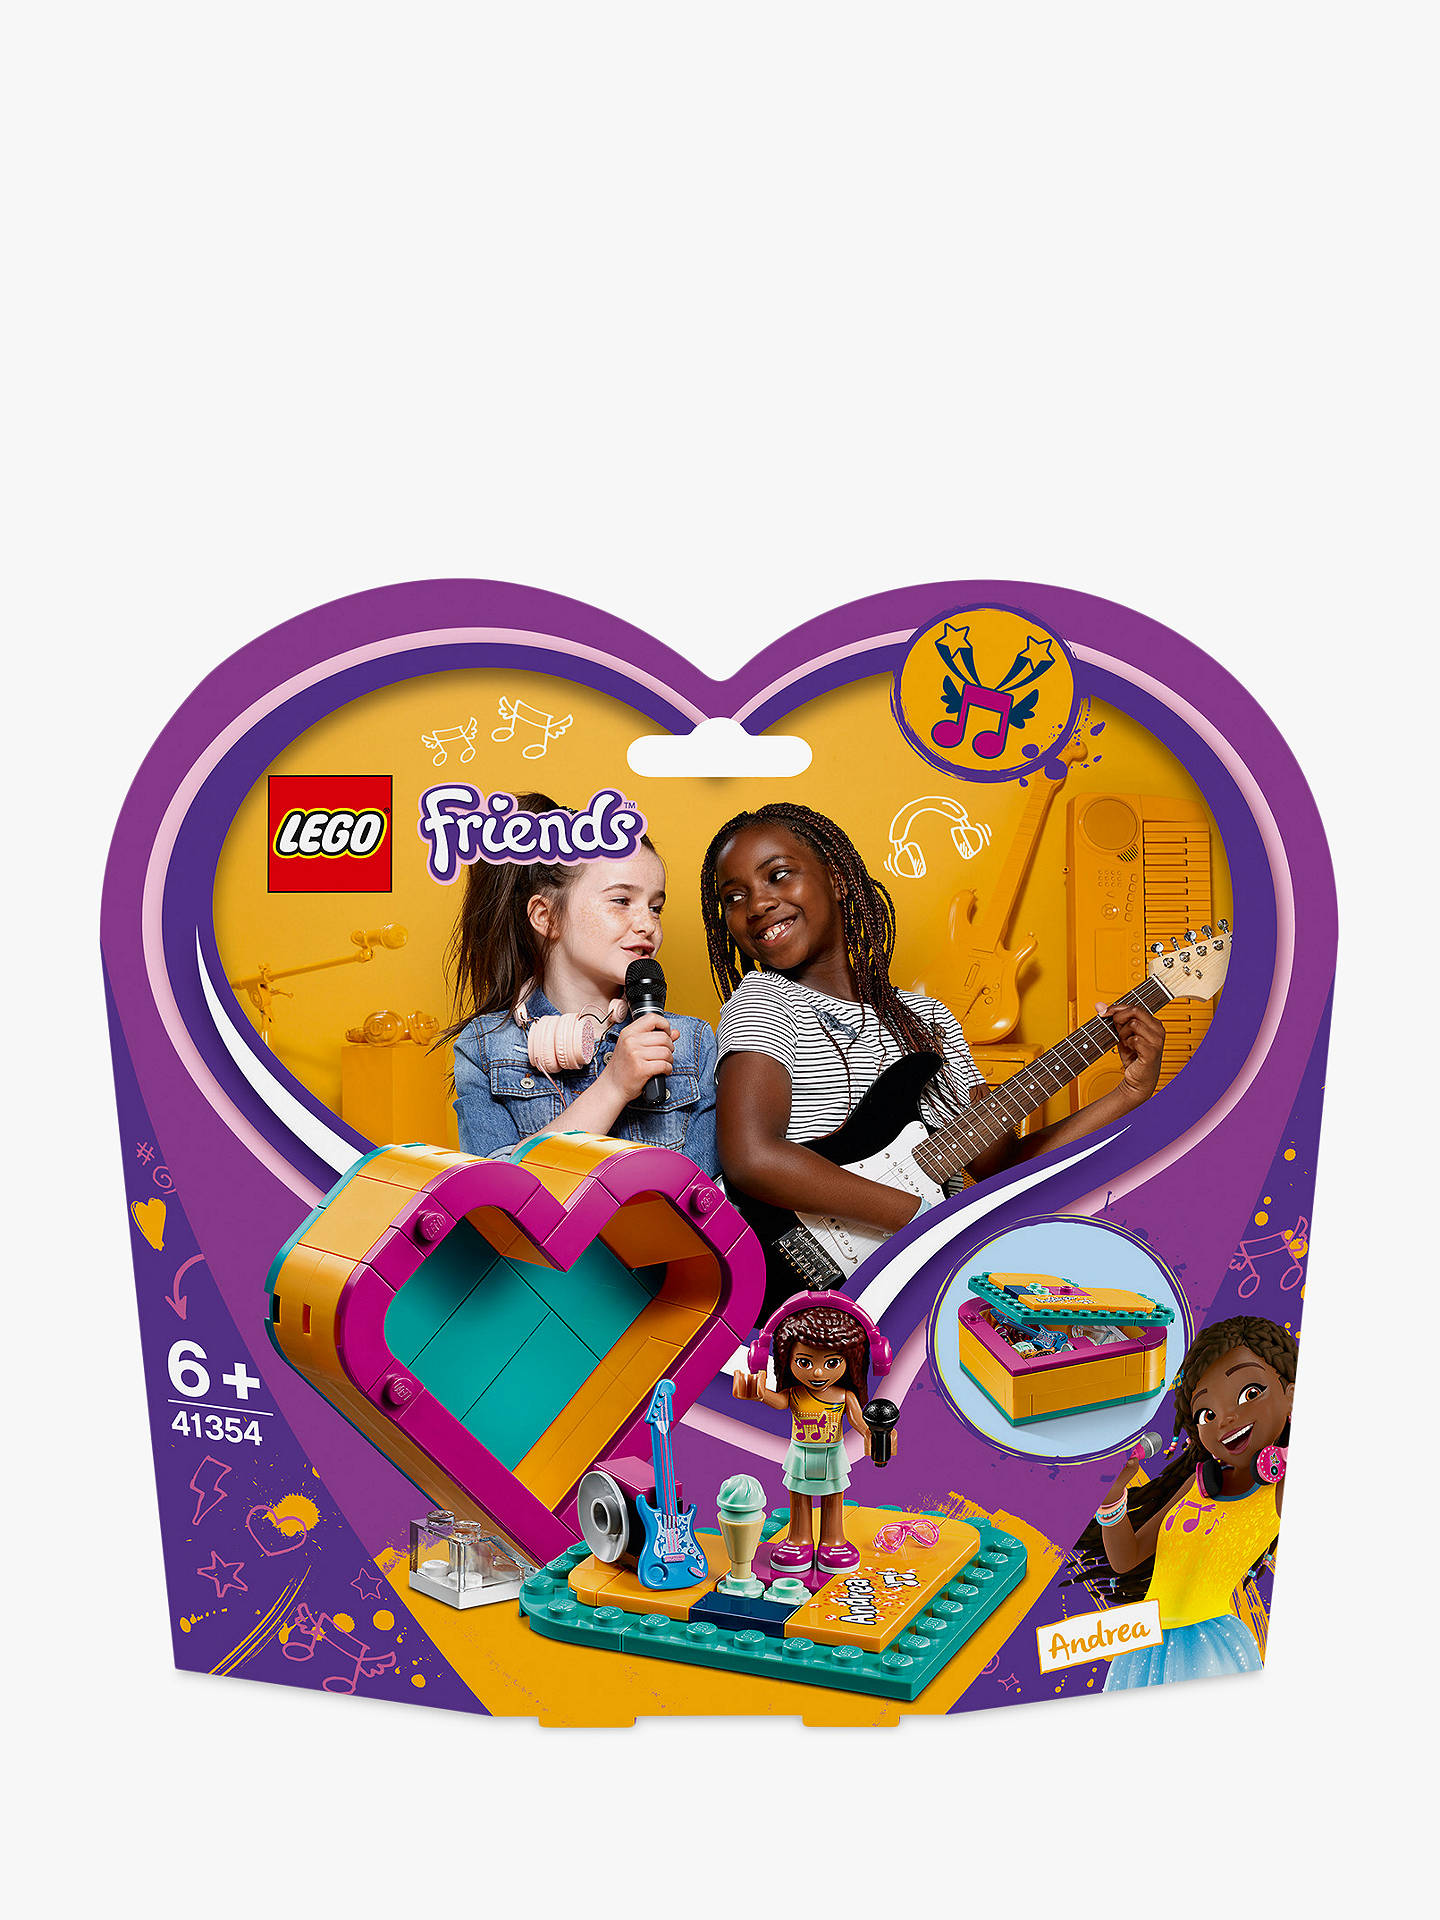 Lego Friends 41354 Andreas Heart Box Doll Playset Toy Storage At